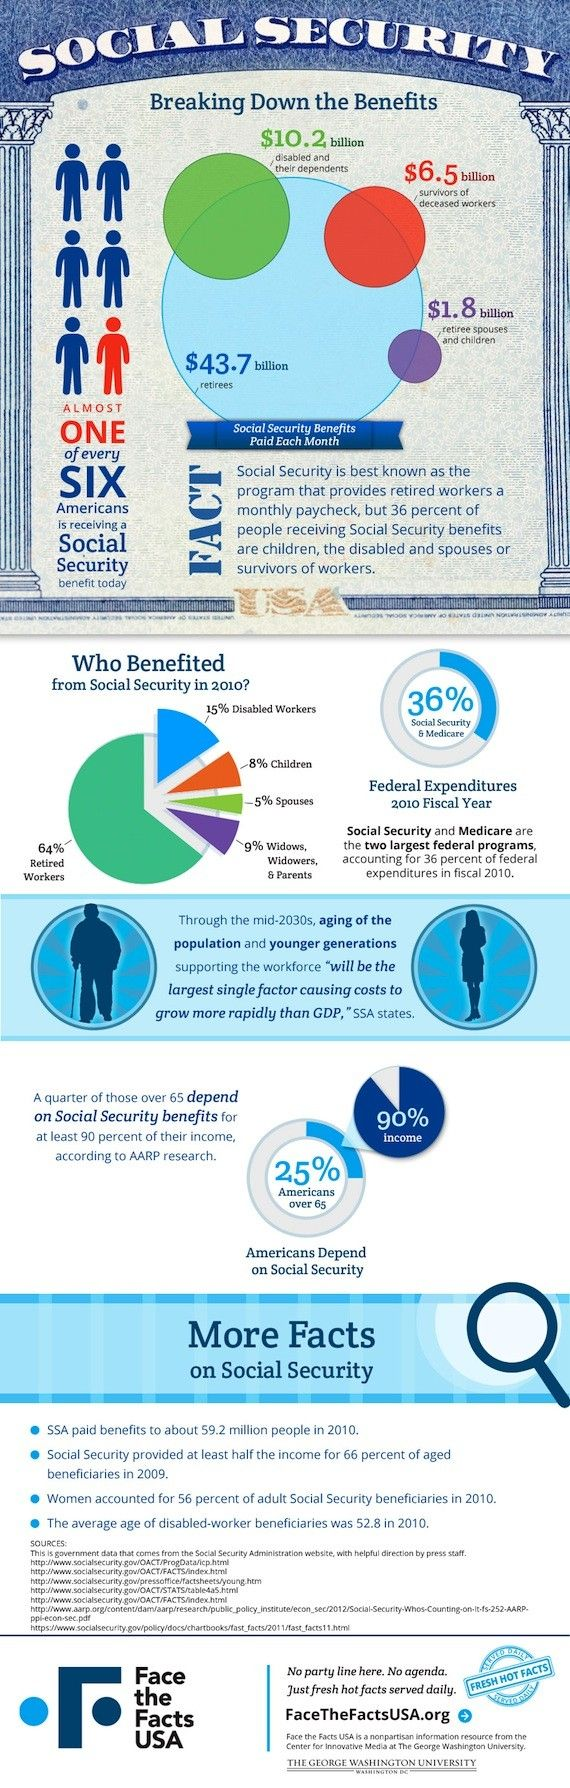 Pin On Social Security Medicare Medicaid Graphics